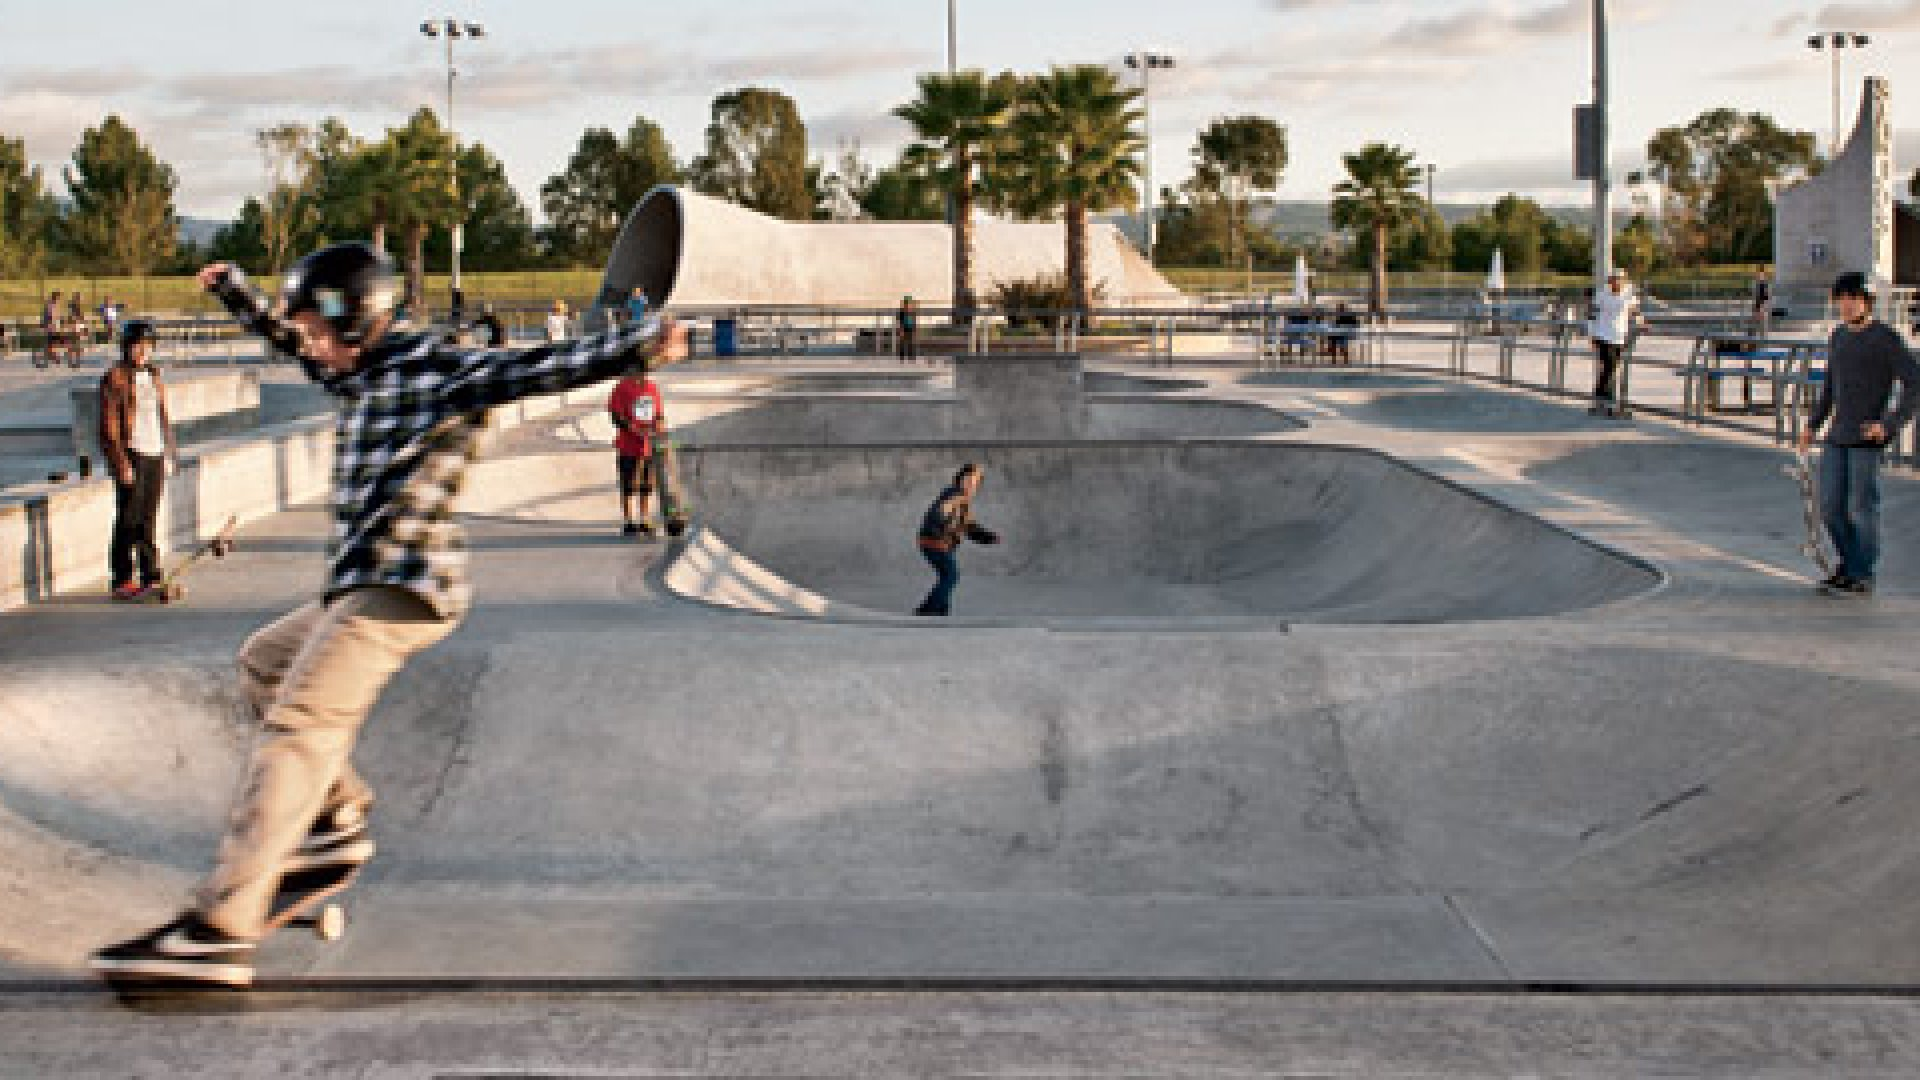 What Goes Into Making a Skate Park?